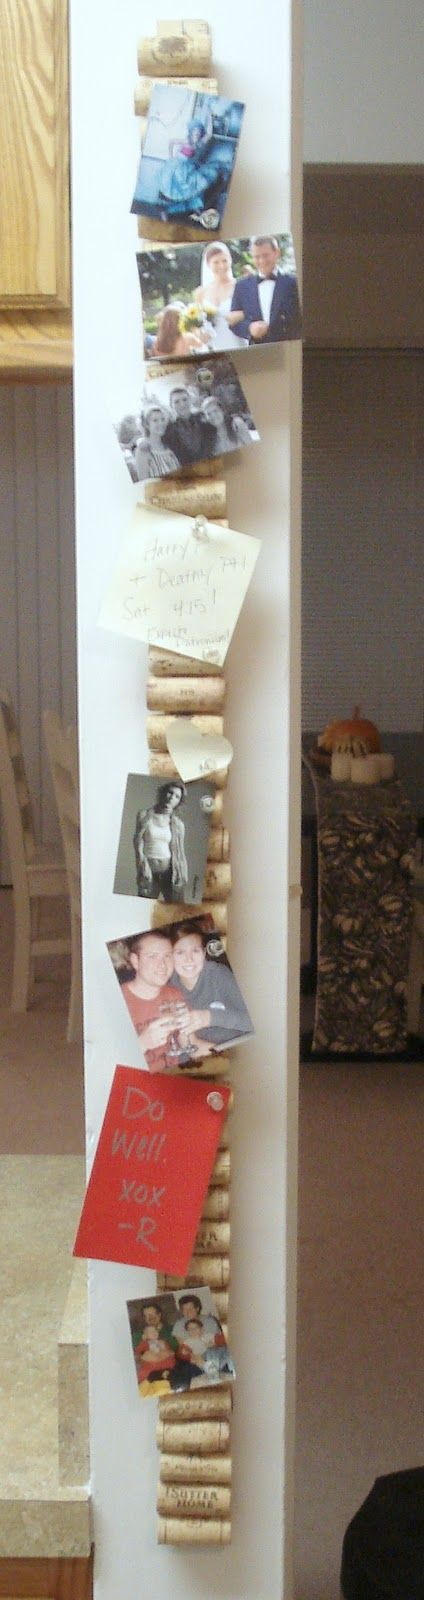 Put corks on a yard stick and you get a vertical cork board-Christmas cards, pictures, etc.